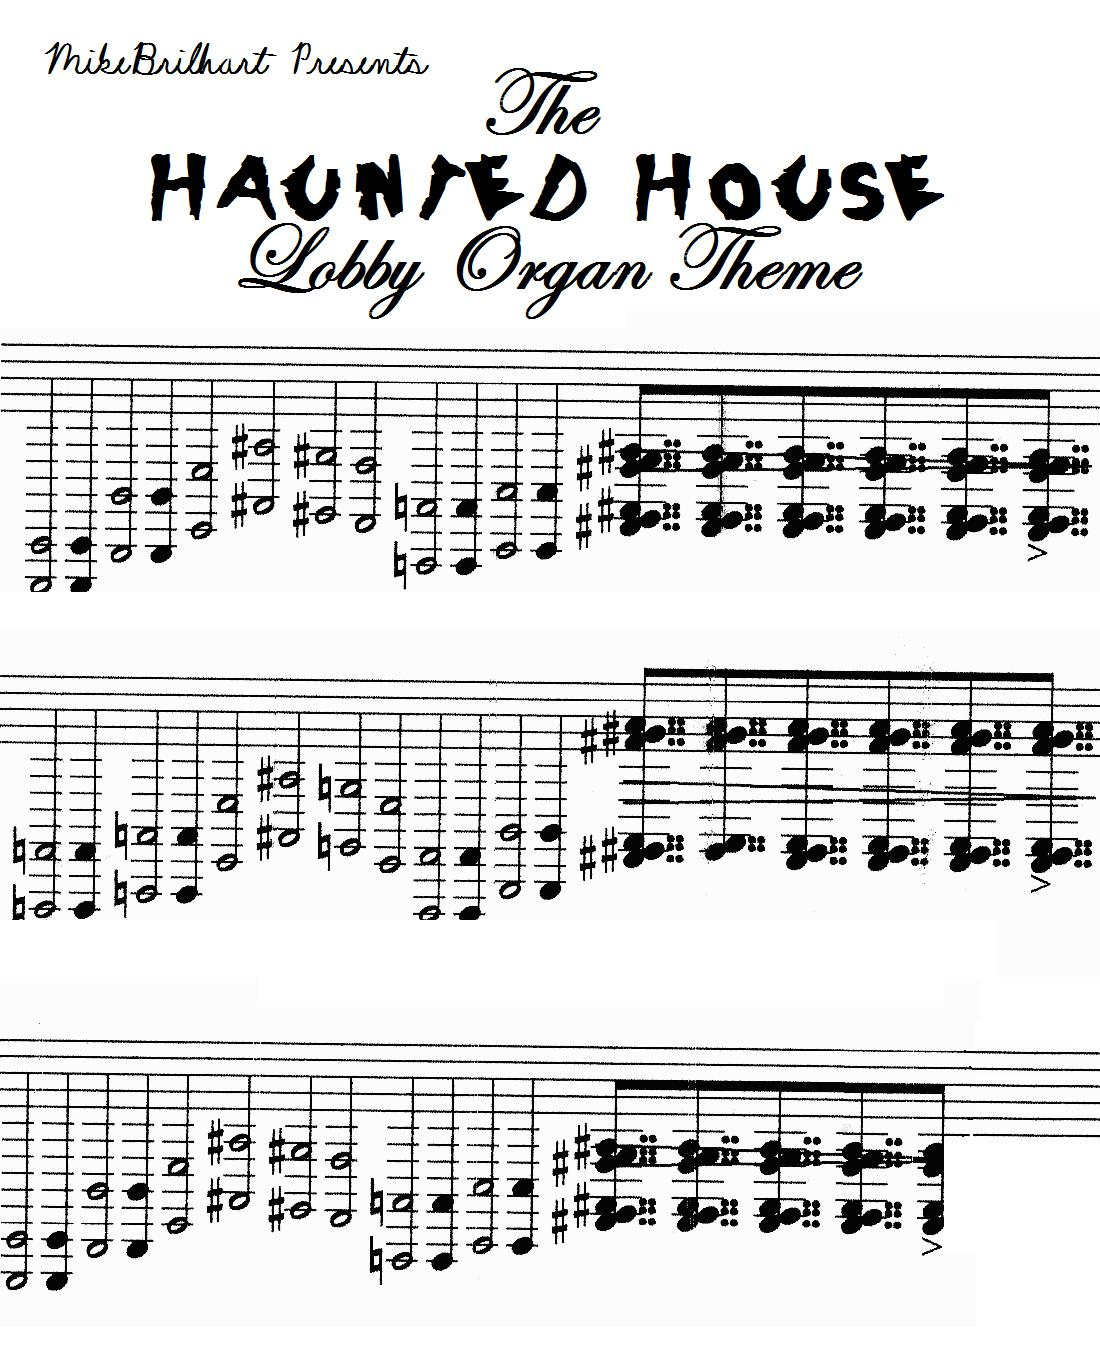 Trimper 39 s haunted house sounds - Michael in the bathroom sheet music ...